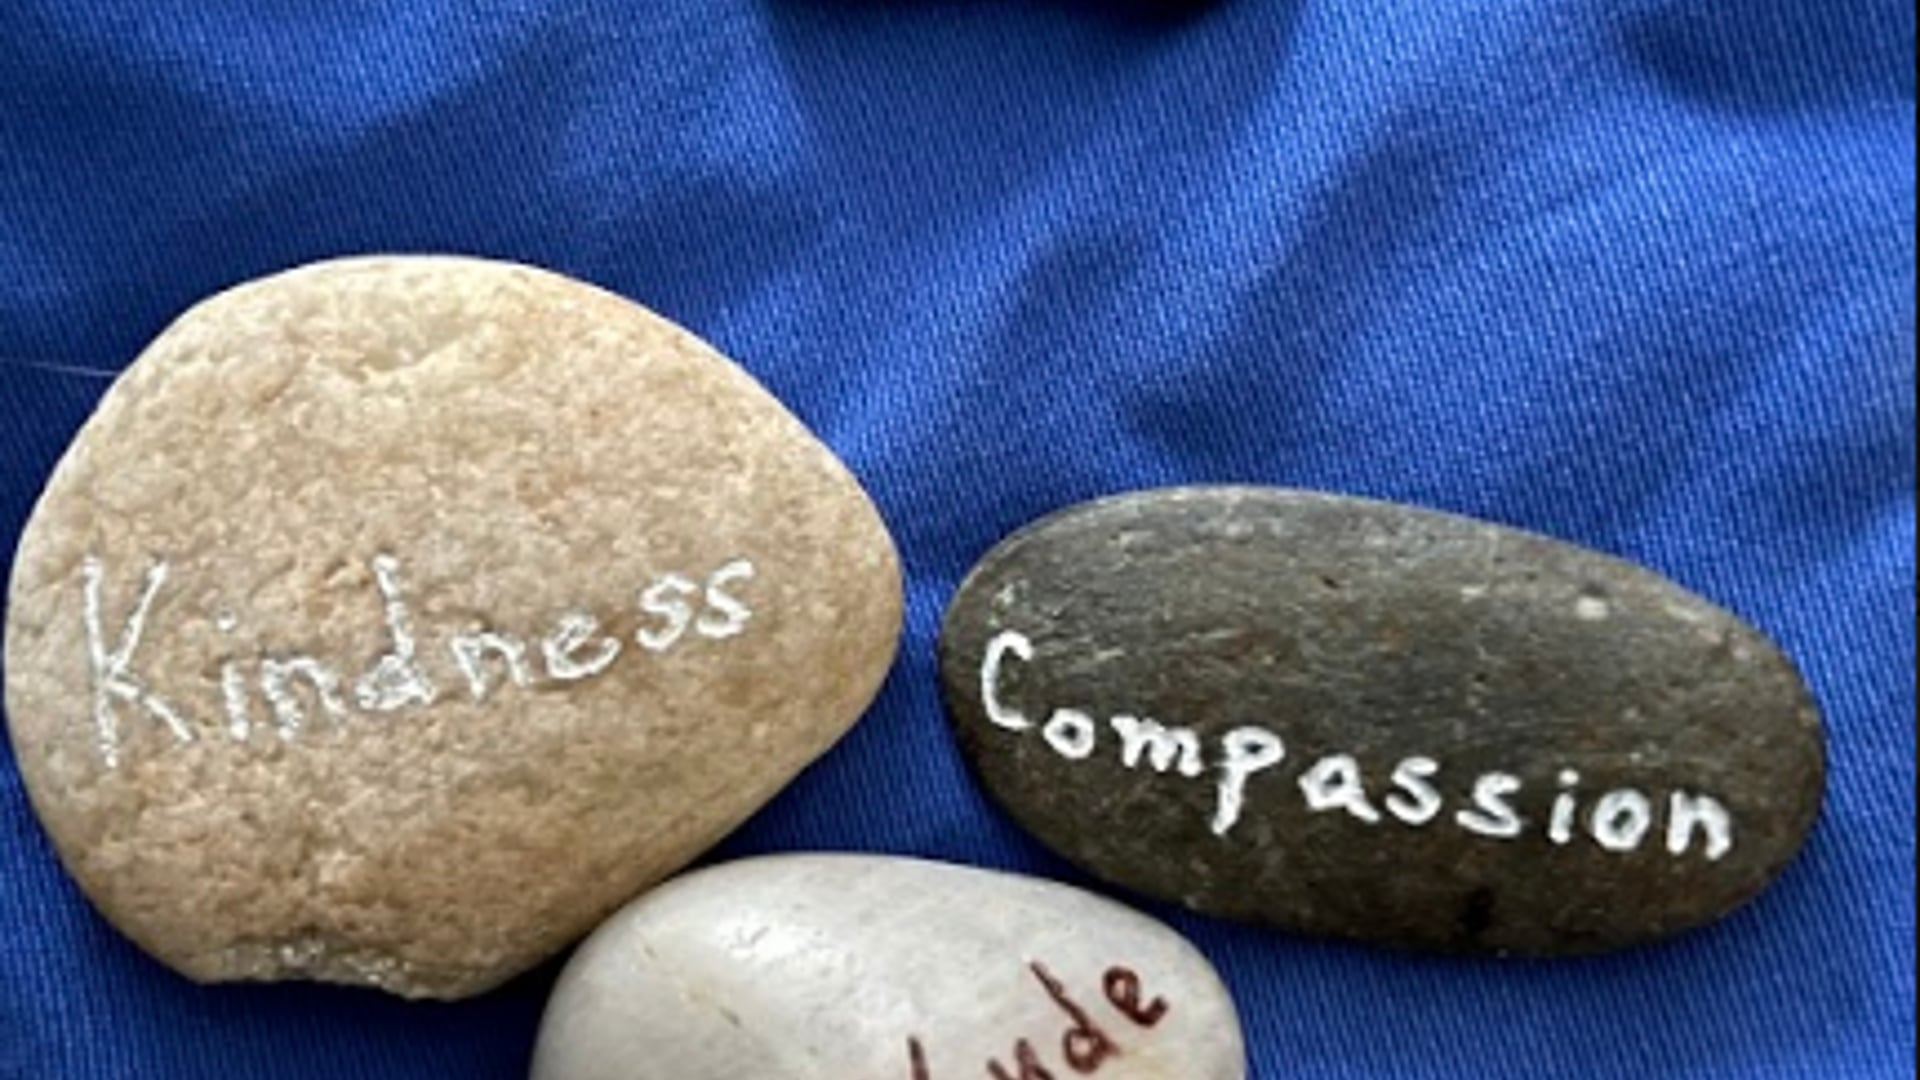 May 31: Why Focus on Impermanence?